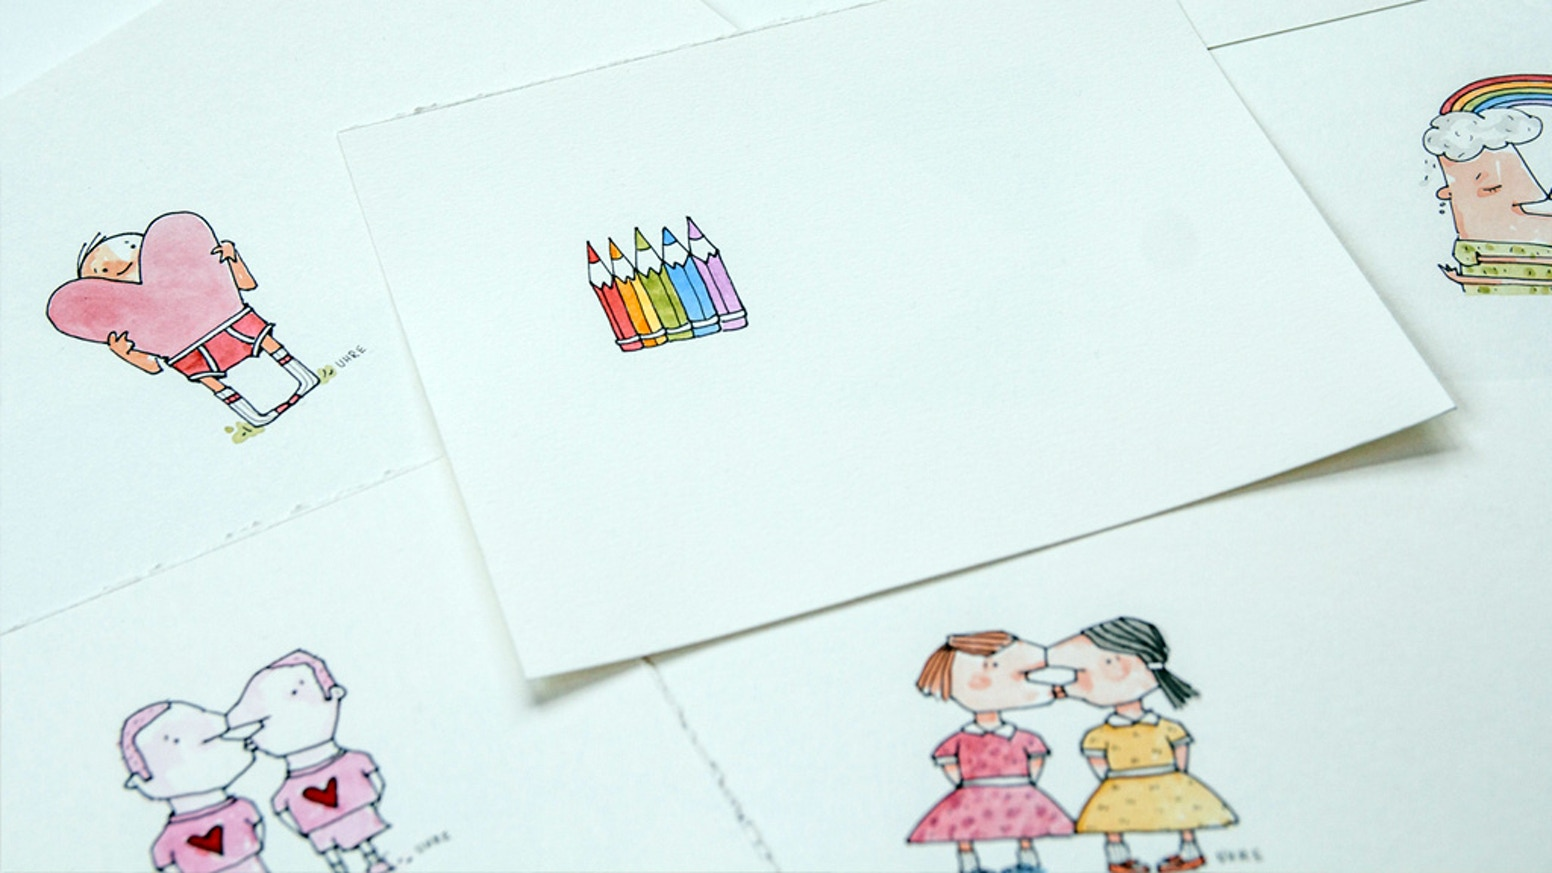 Celebrating life's big (and not so big) moments with LGBTQ inclusive greeting cards. Proudly made in Toronto, Canada.